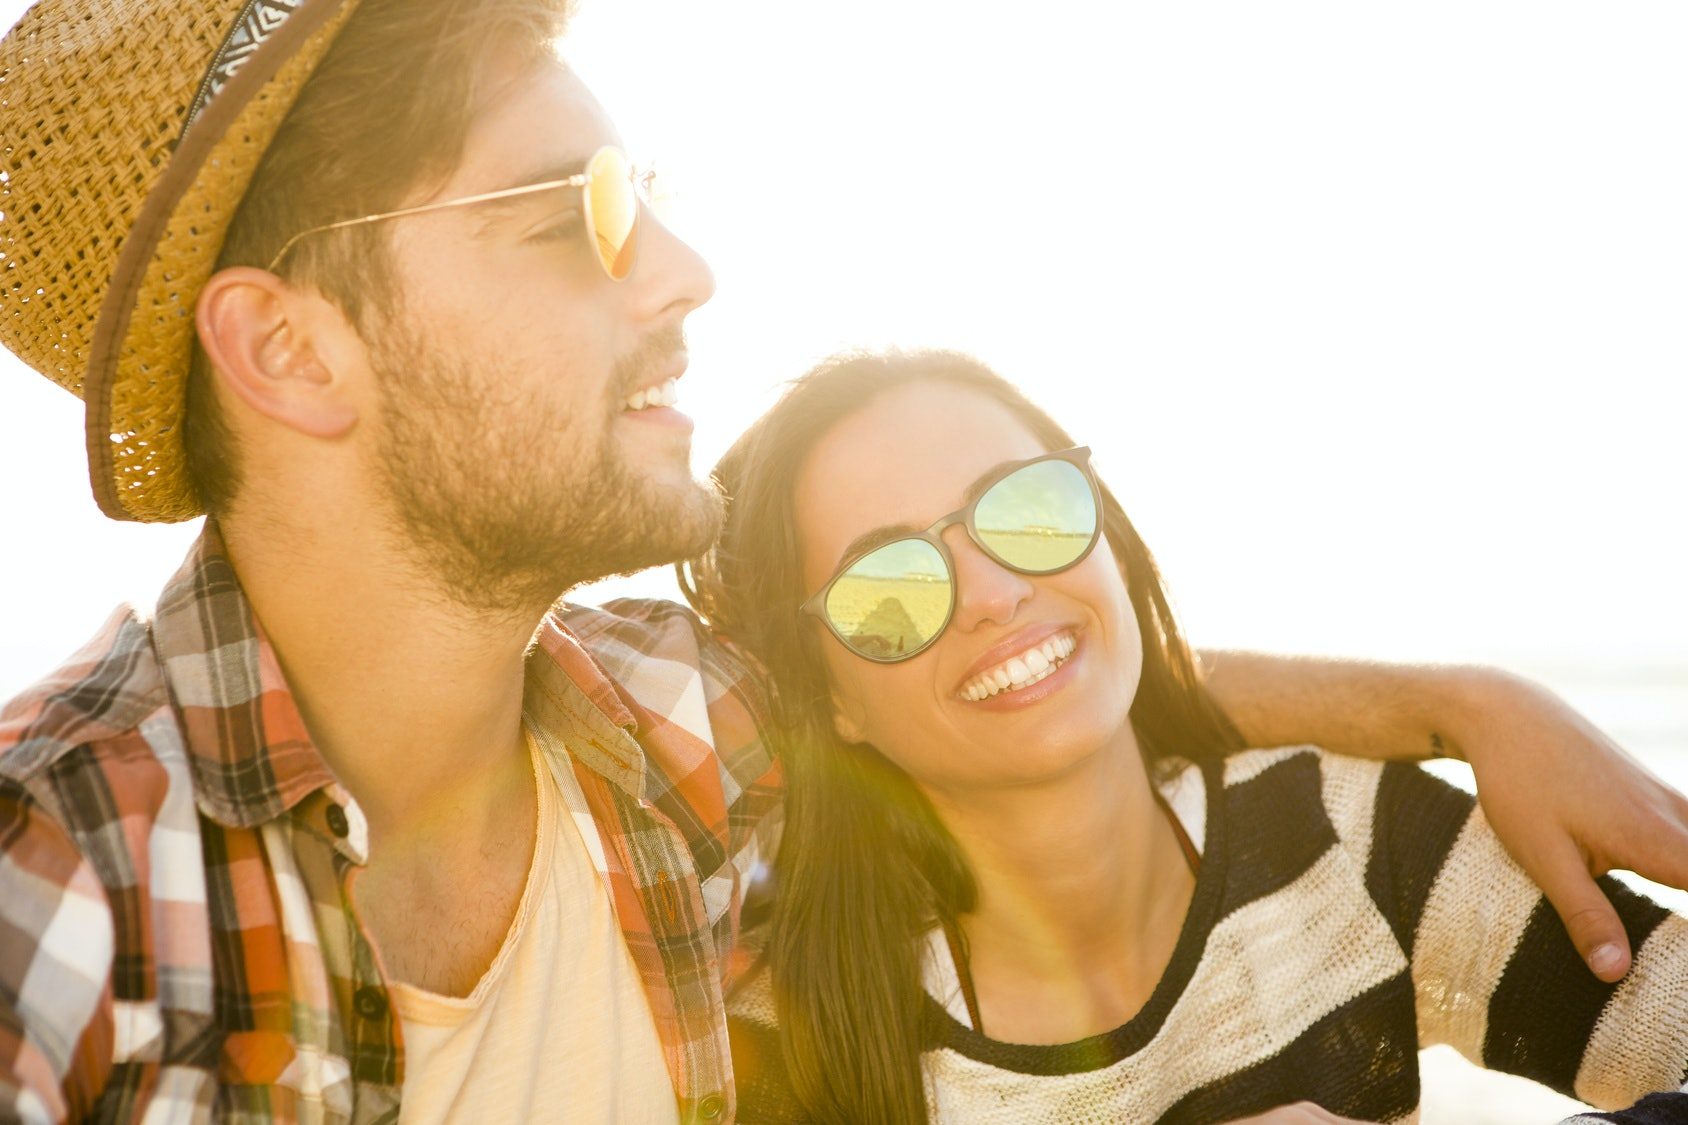 What You Should Know Before Hookup Someone